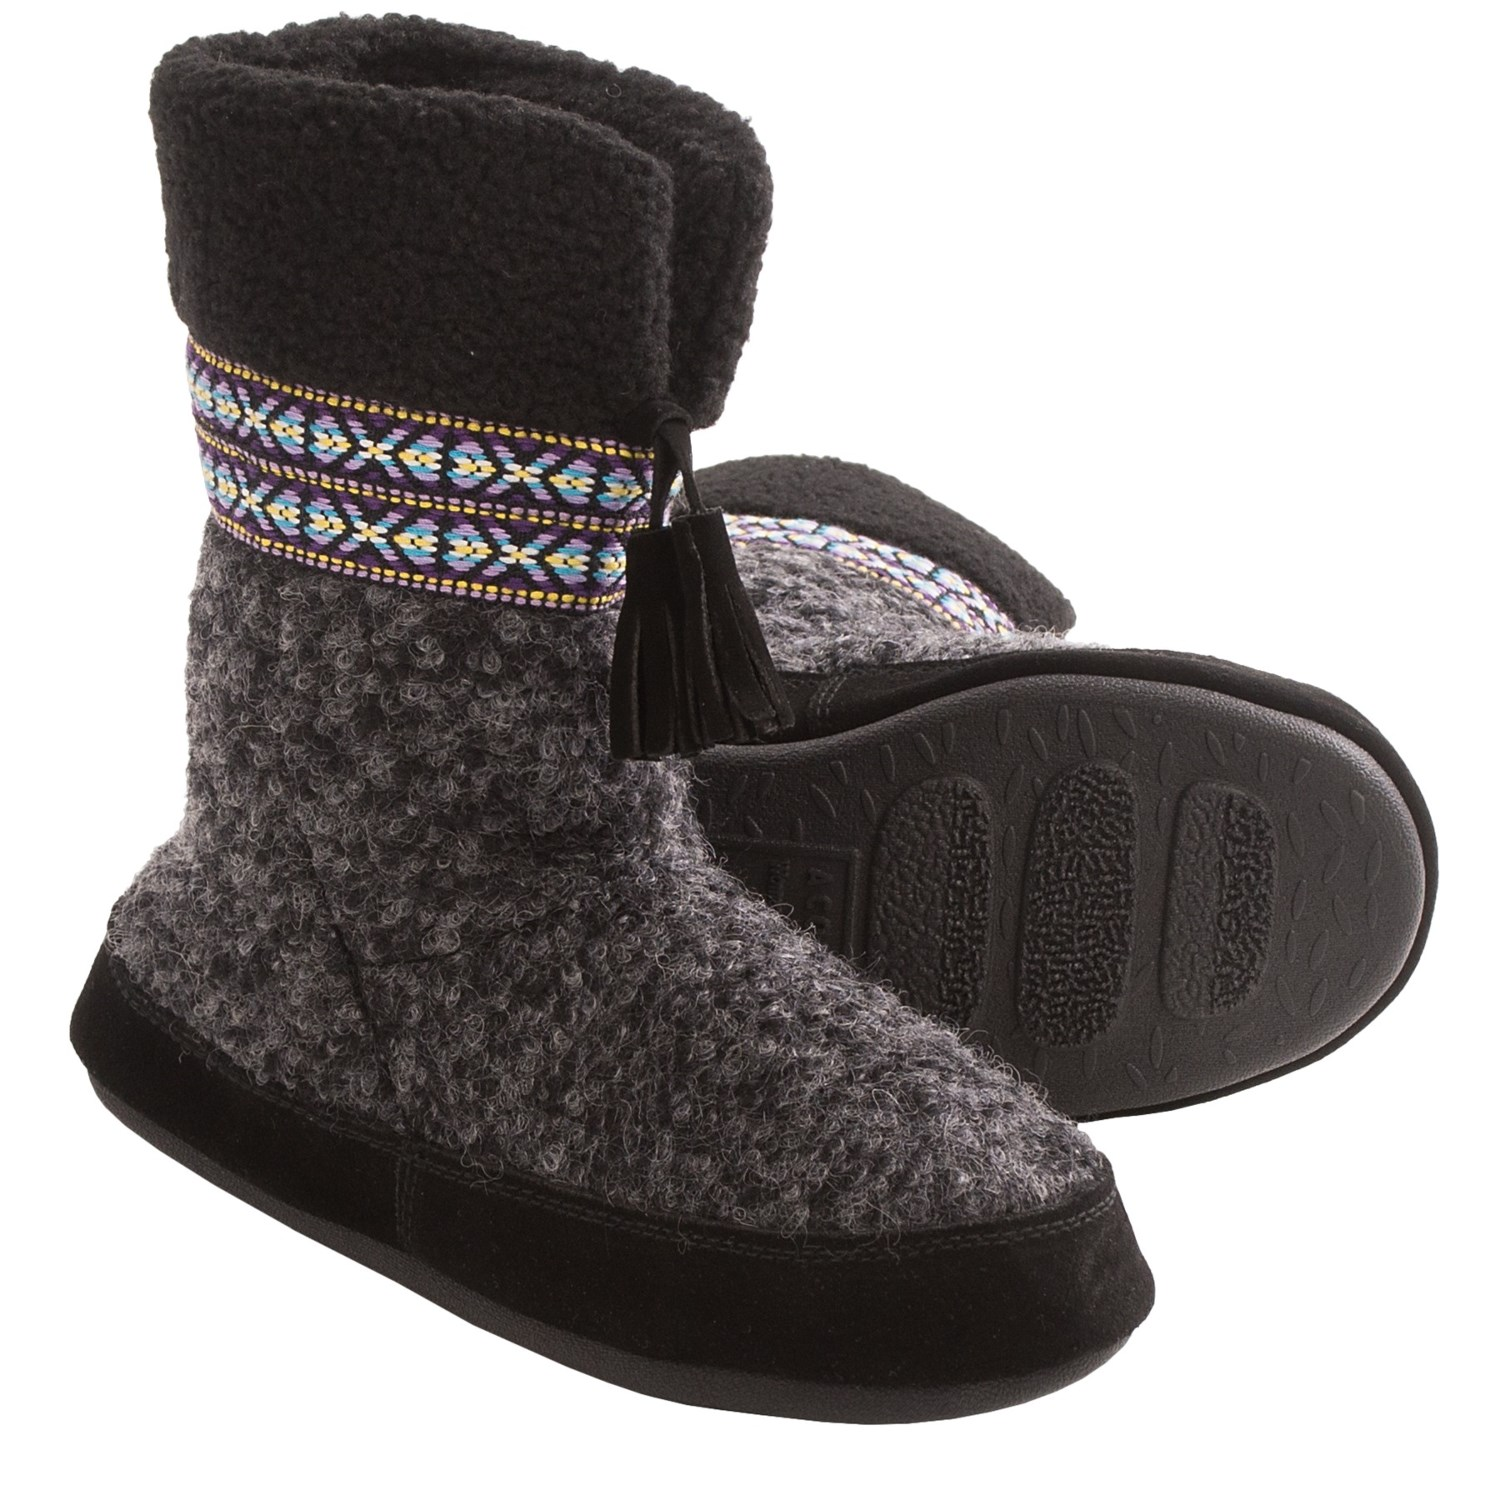 Acorn snowline boot slippers wool blend for women in black